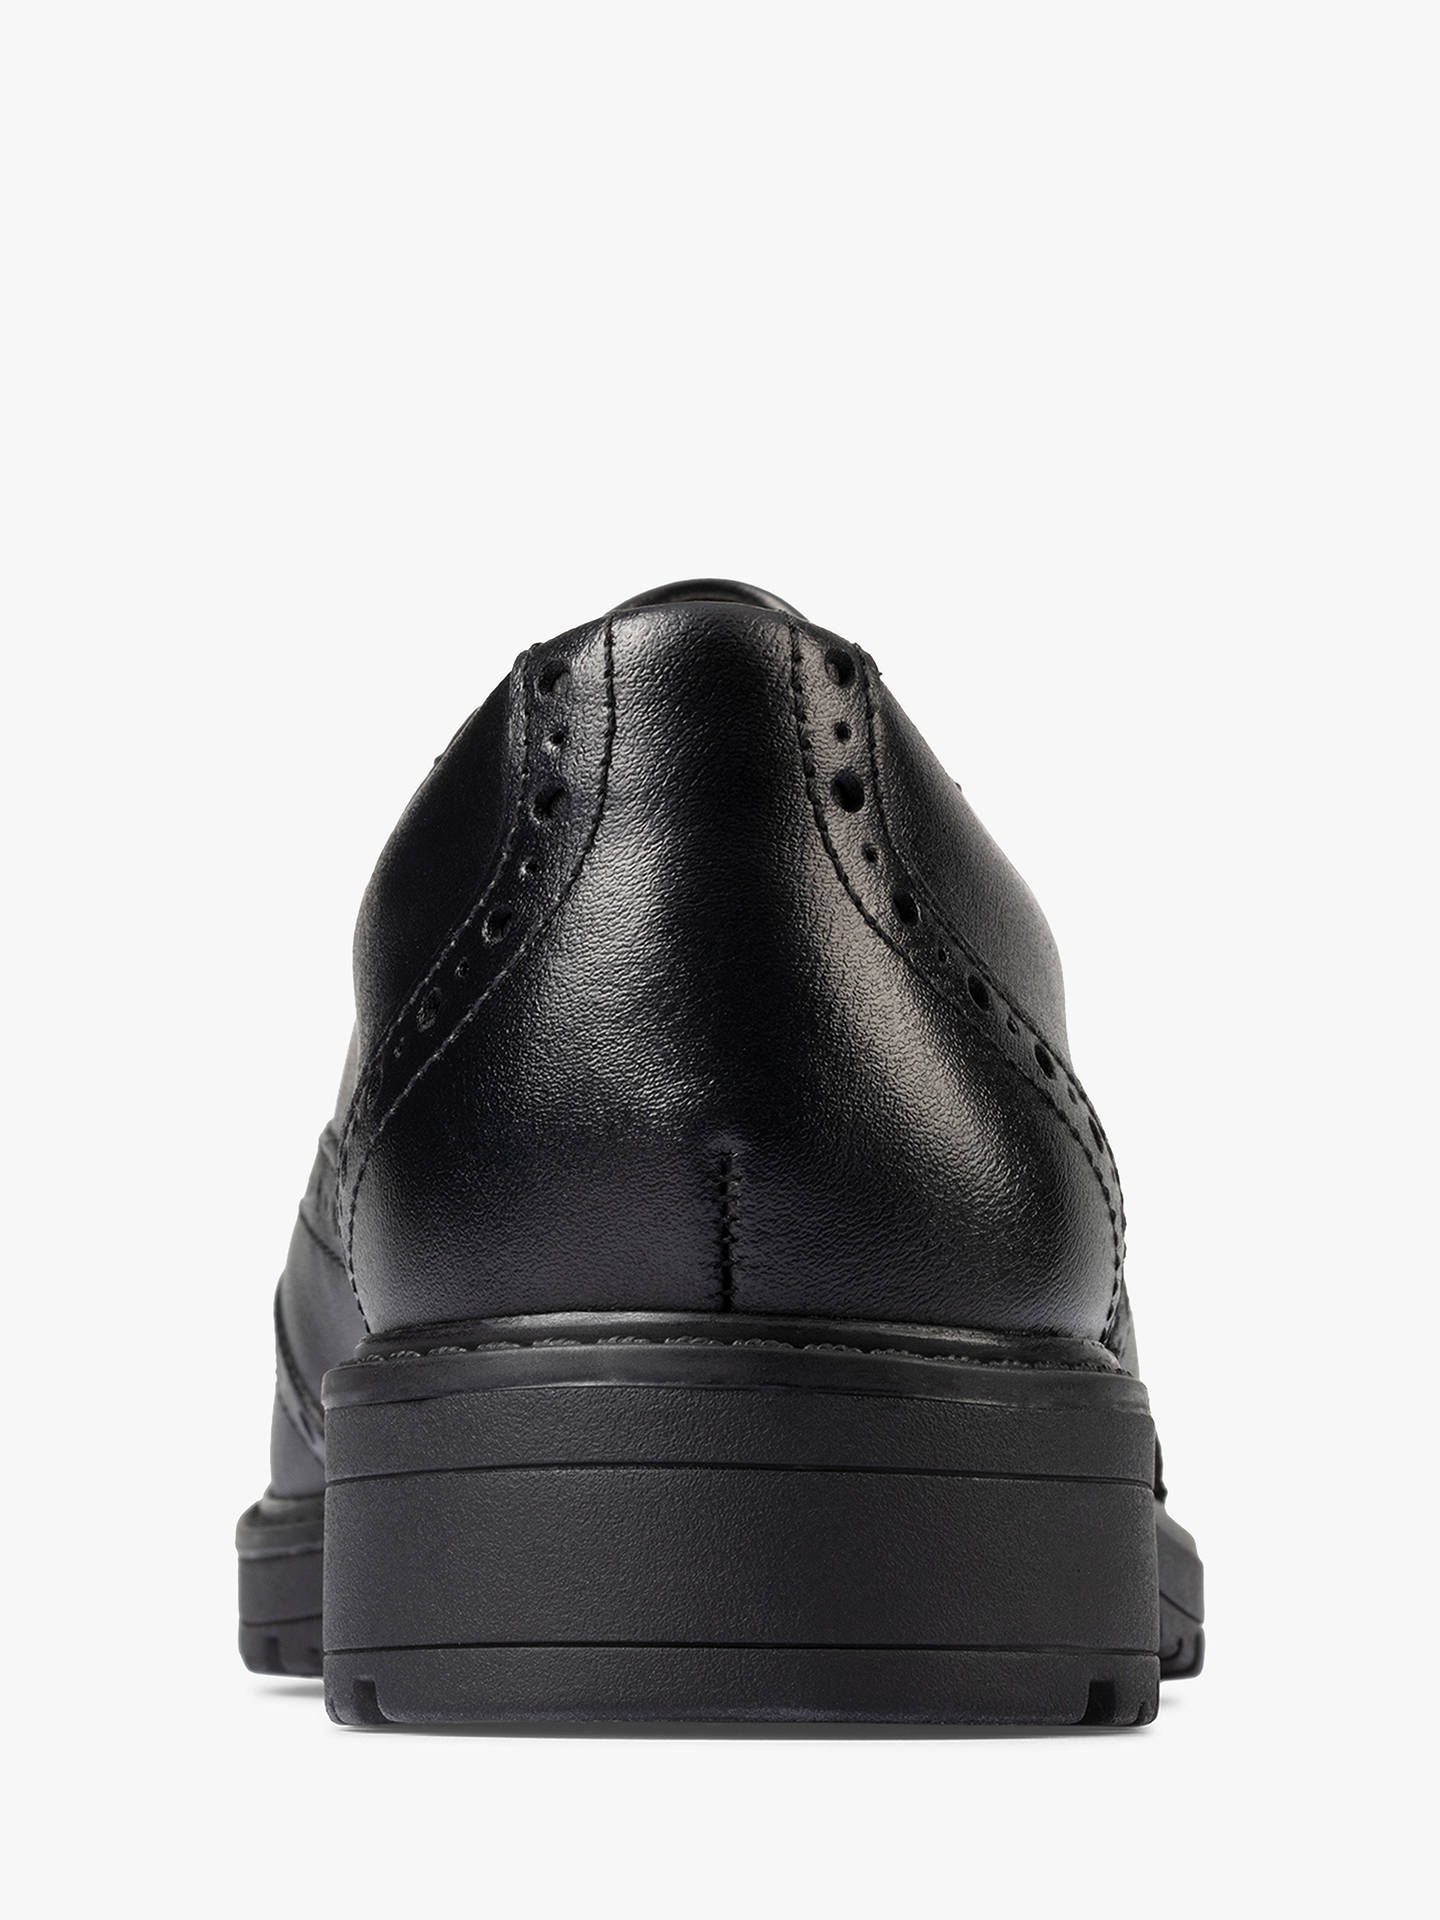 Buy Clarks Children's Loxham Brogue School Shoes, Black Leather, 3F Online at johnlewis.com